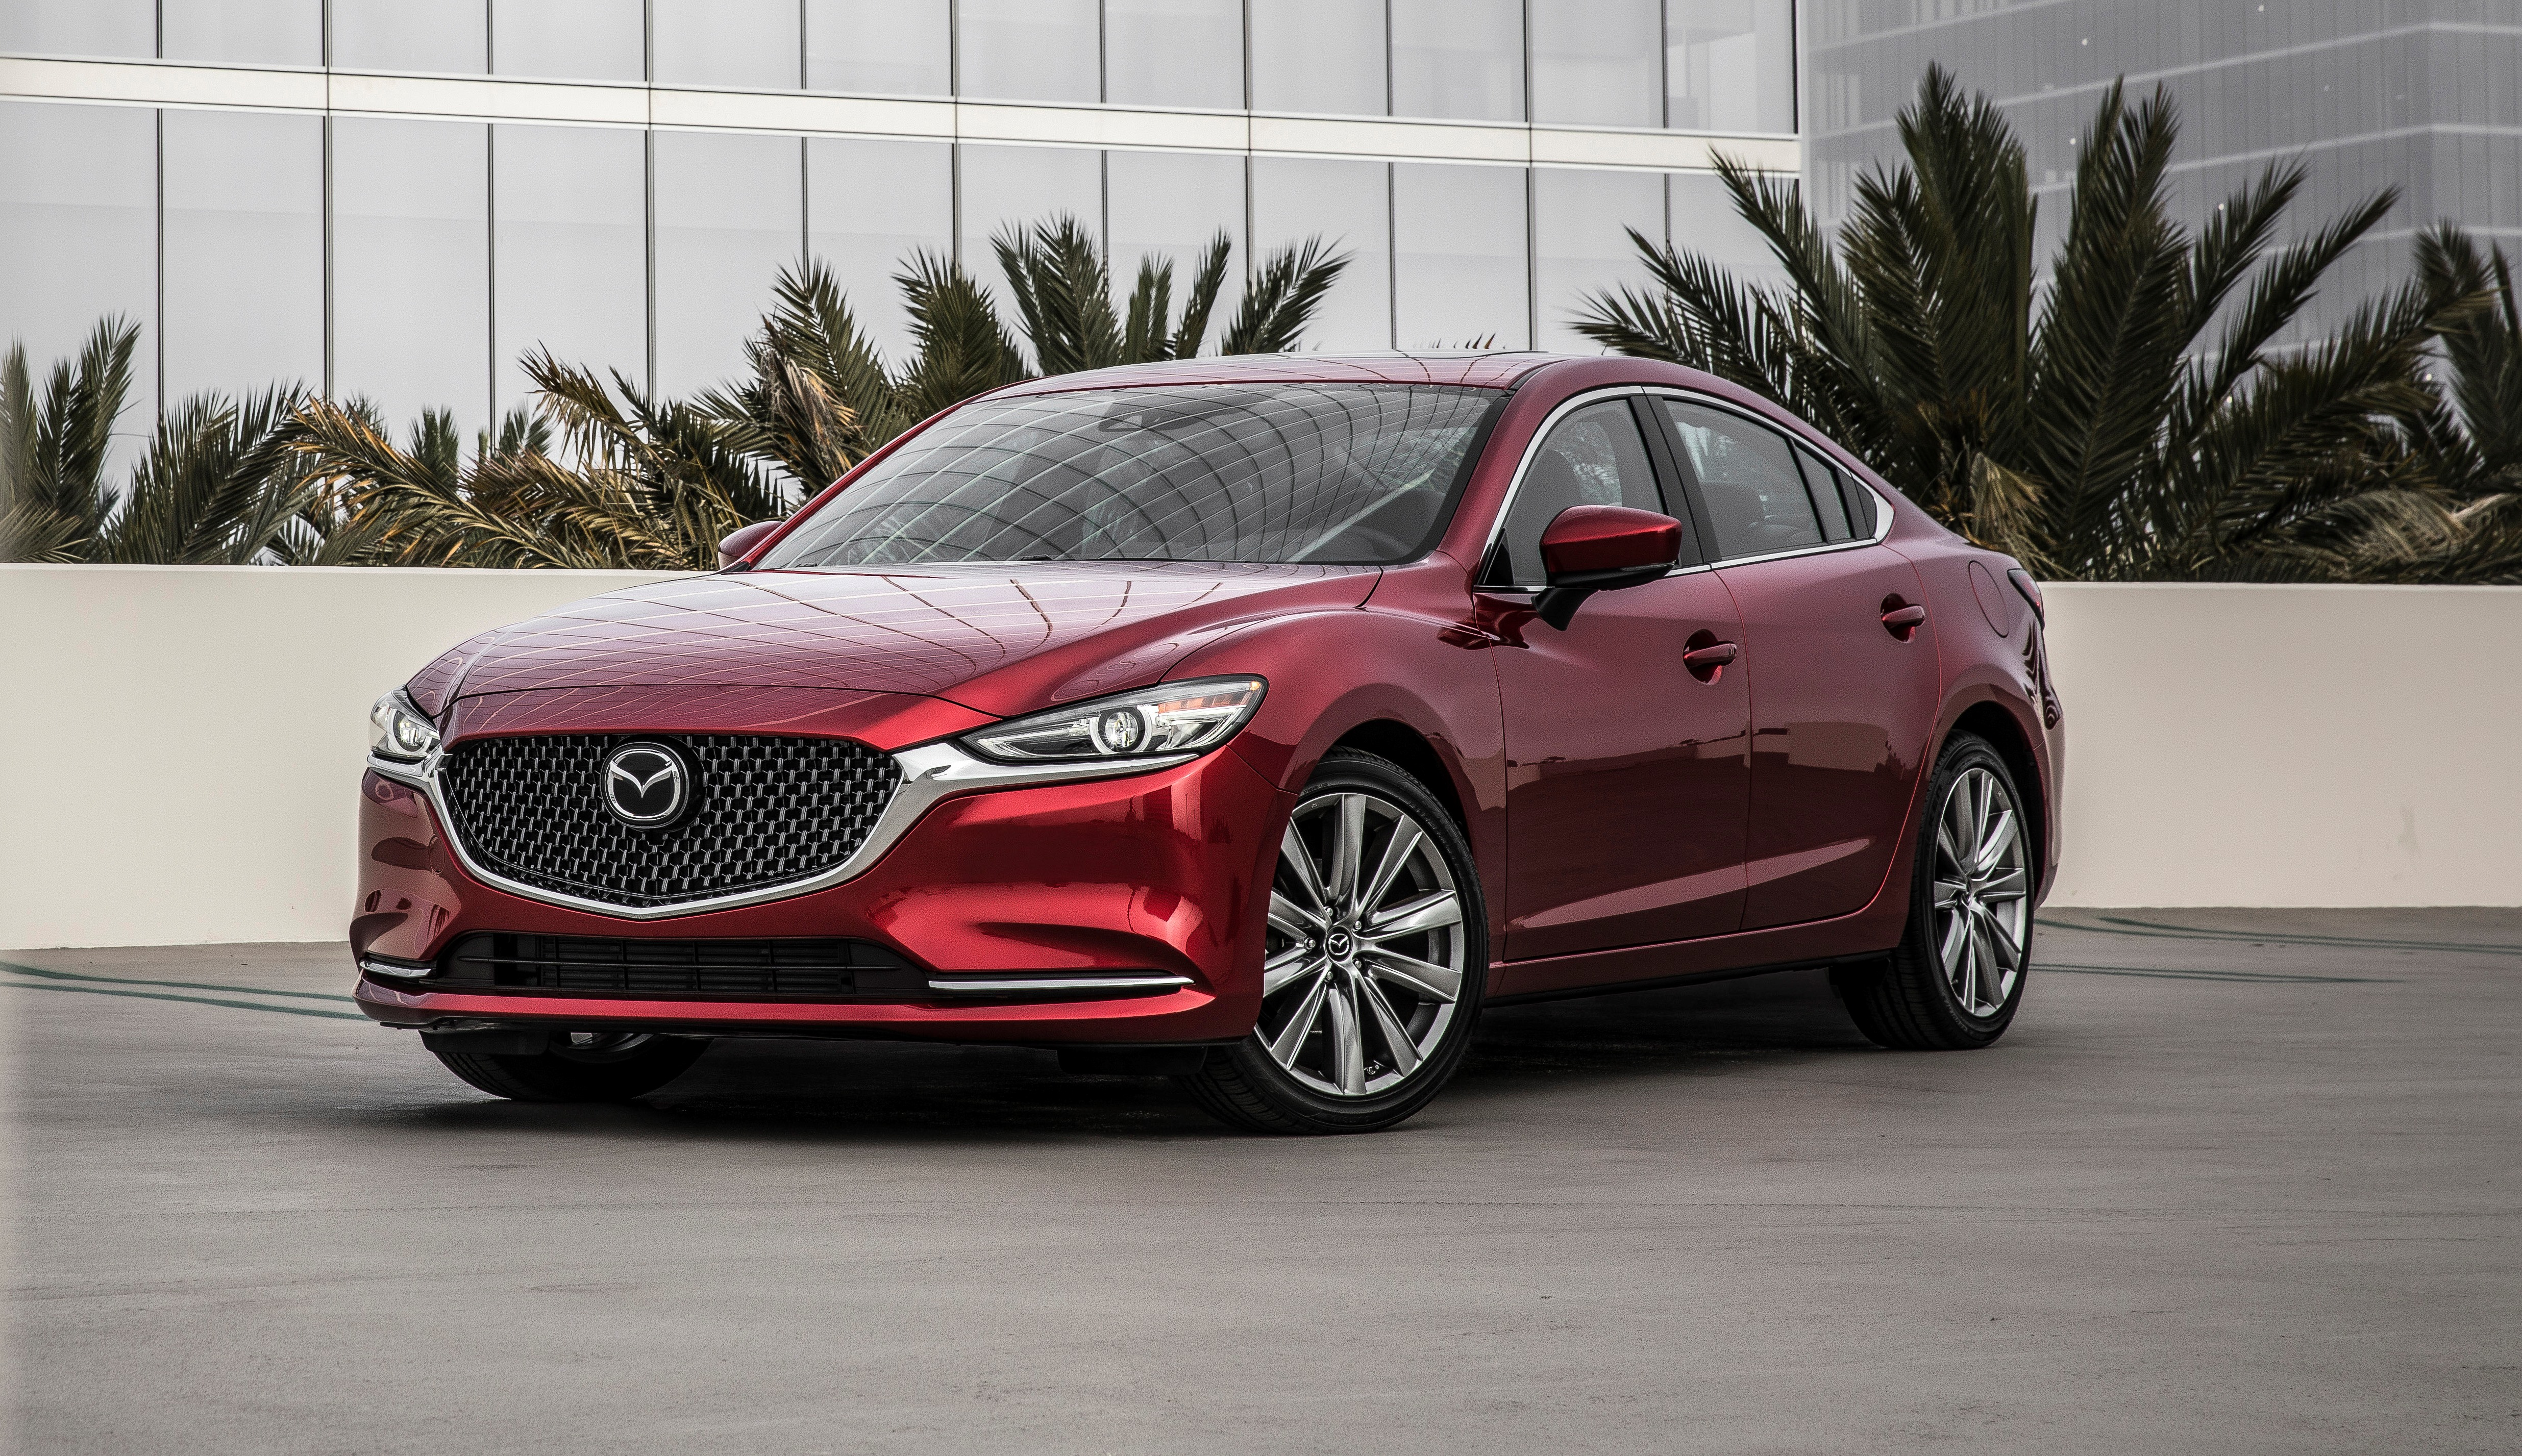 2018 mazda6 sedan combines great value with style and turbocharged performance autoevolution. Black Bedroom Furniture Sets. Home Design Ideas